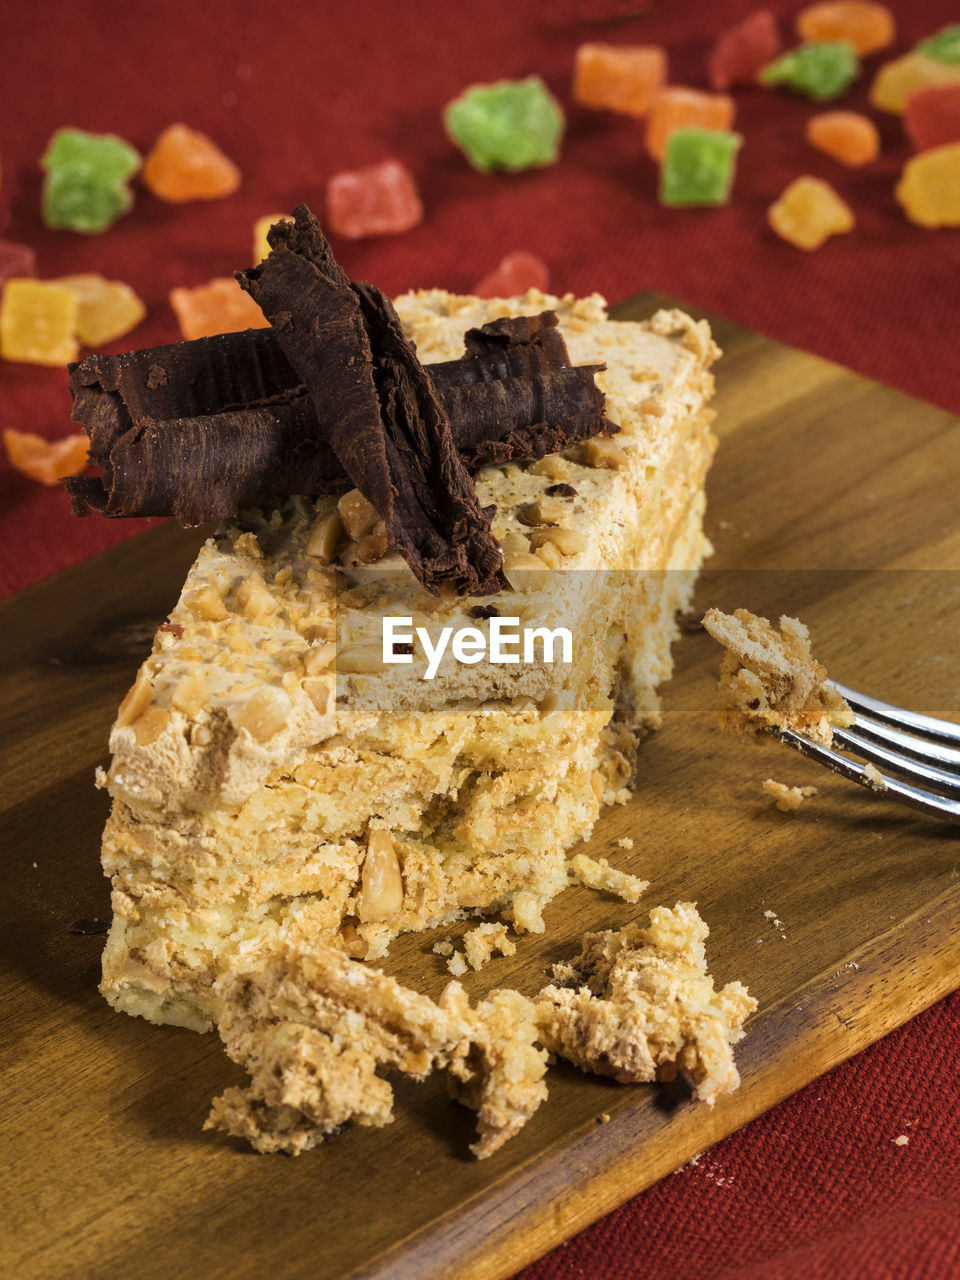 Close-up of cake on cutting board